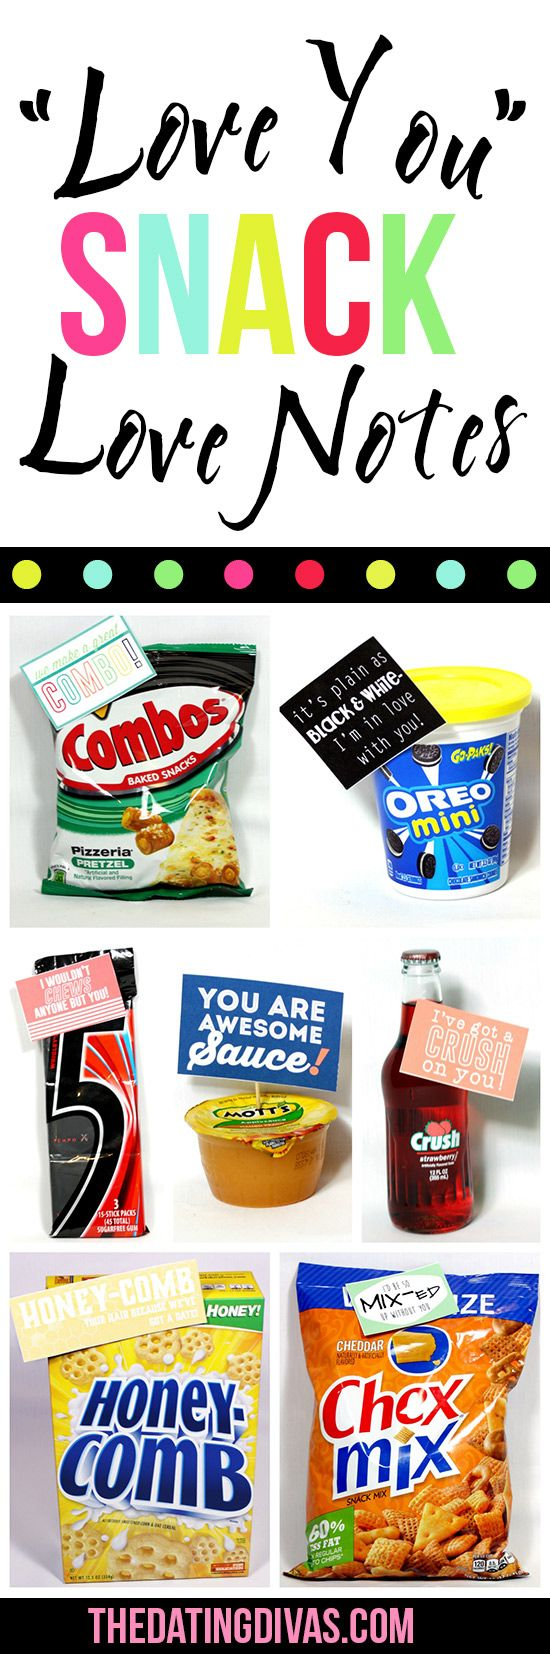 Printable Snack Love Notes Birthday gift for him